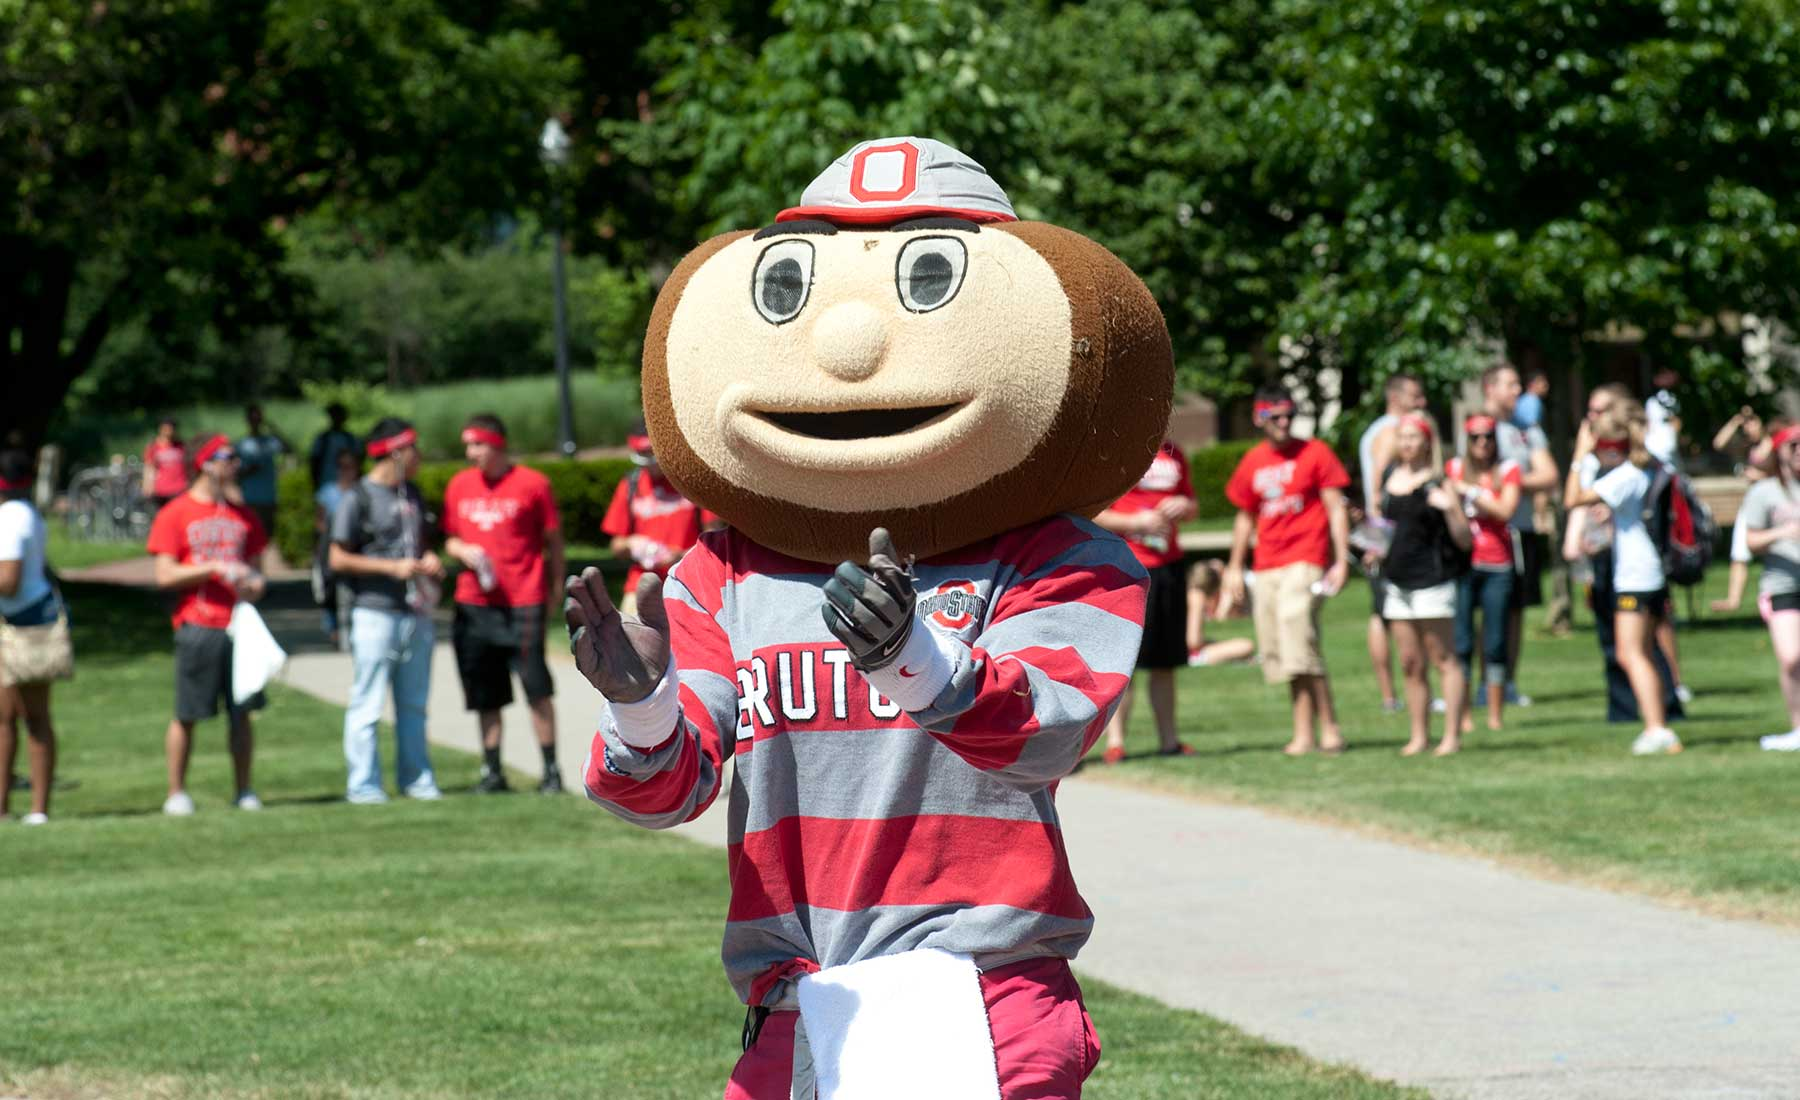 Brutus Buckeye clapping on the Oval